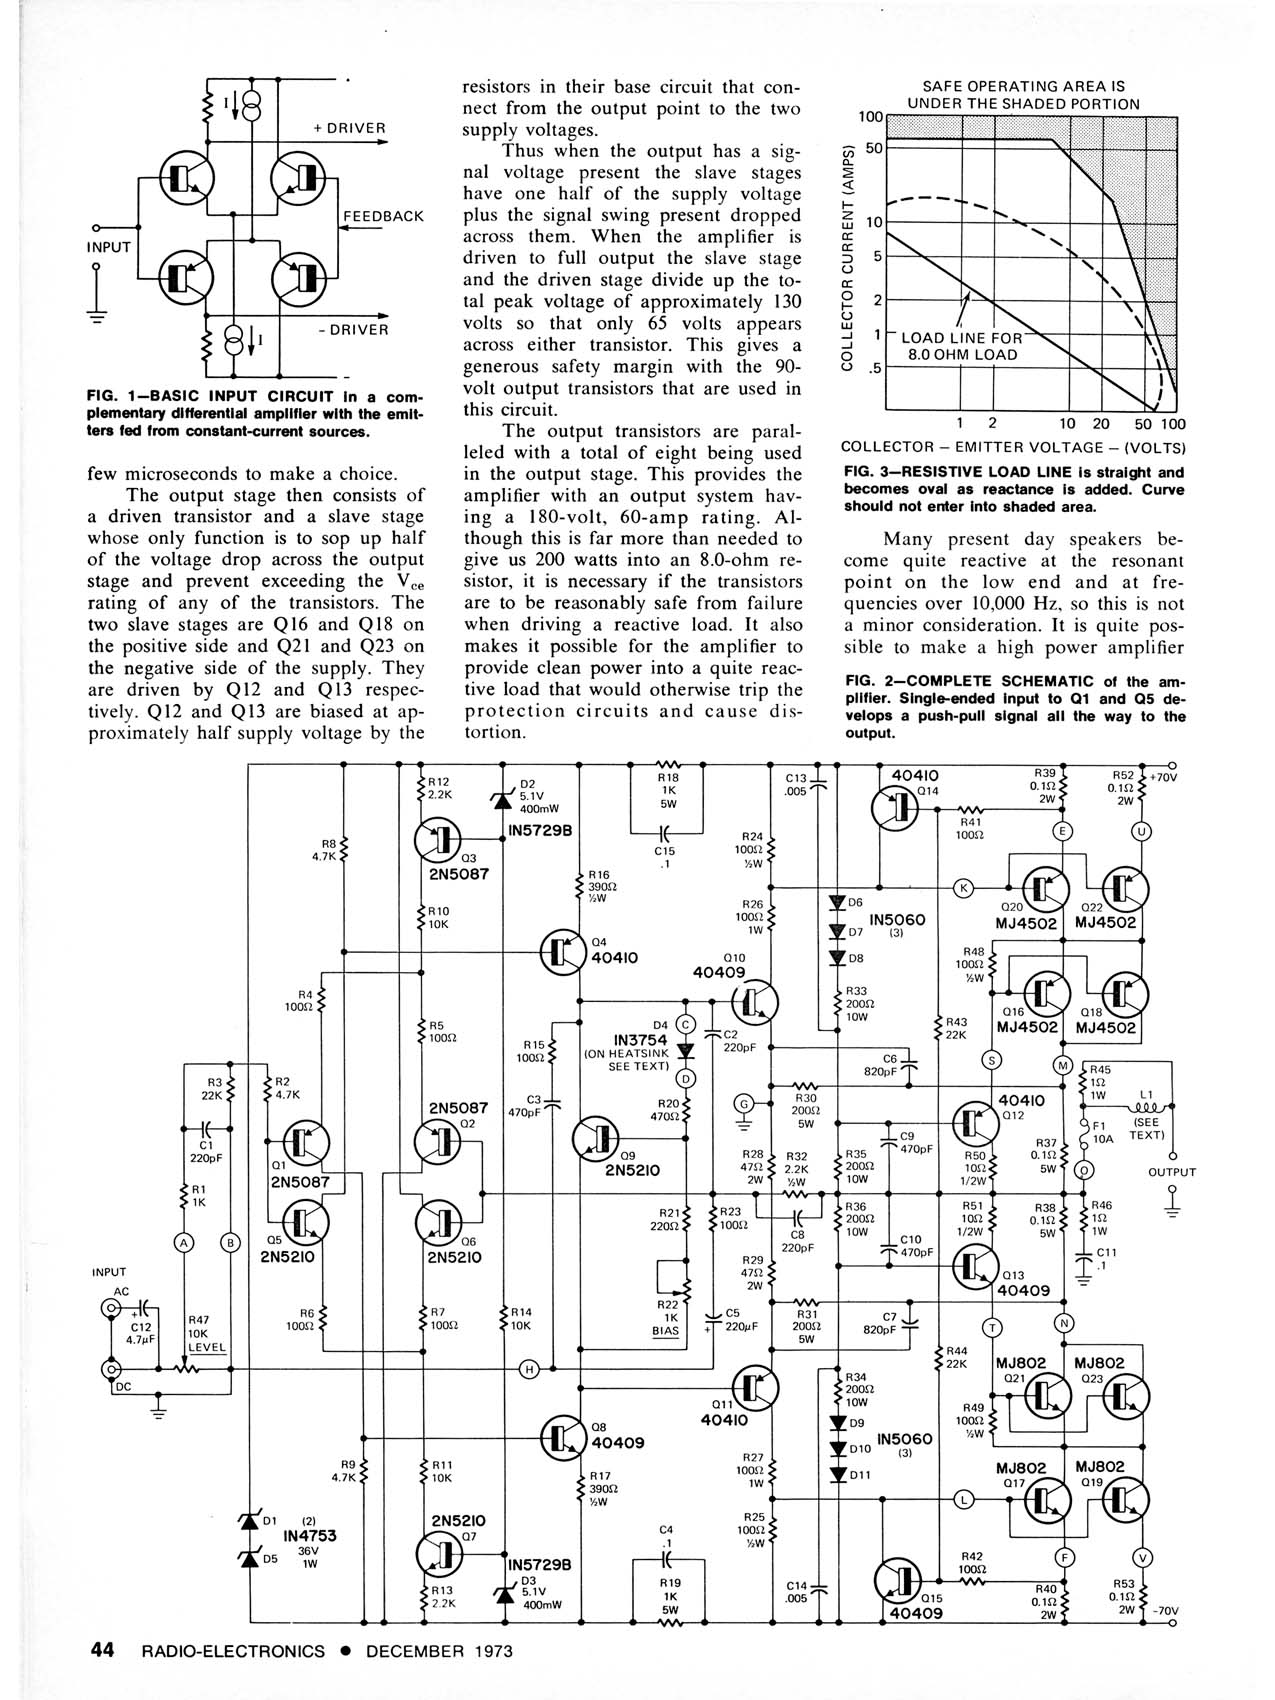 Errata And Power Buffers Lm741 Circuit Click On Image To See Enlargement